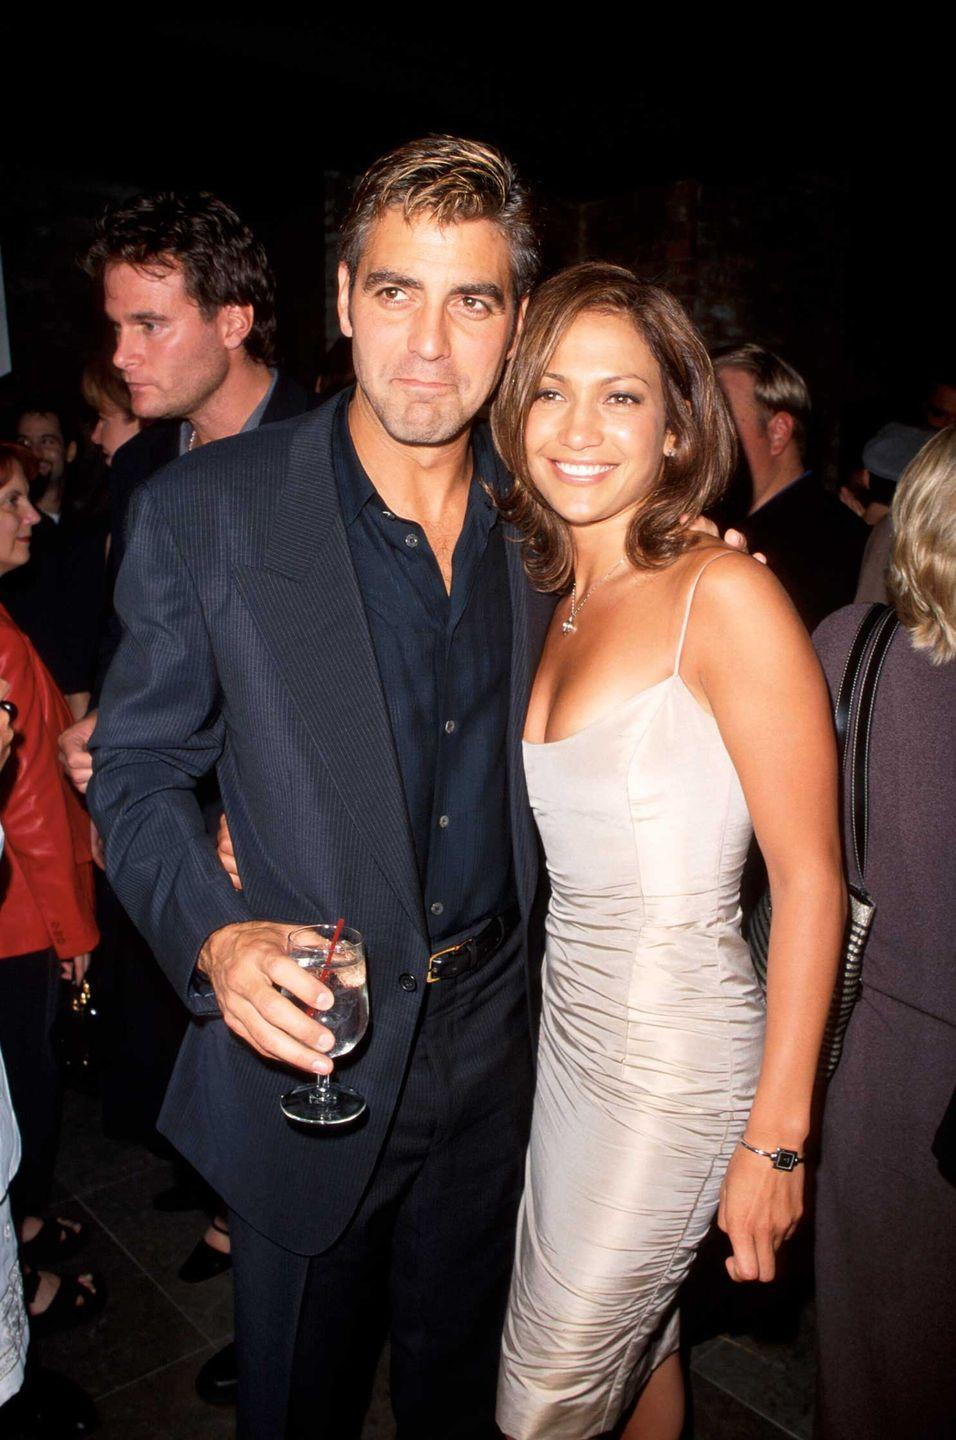 <p>In 1998, George Clooney and Jennifer Lopez got cozy for a photo at the movie premiere of <em>Out of Sight</em>. And somehow, they haven't aged one bit. </p>